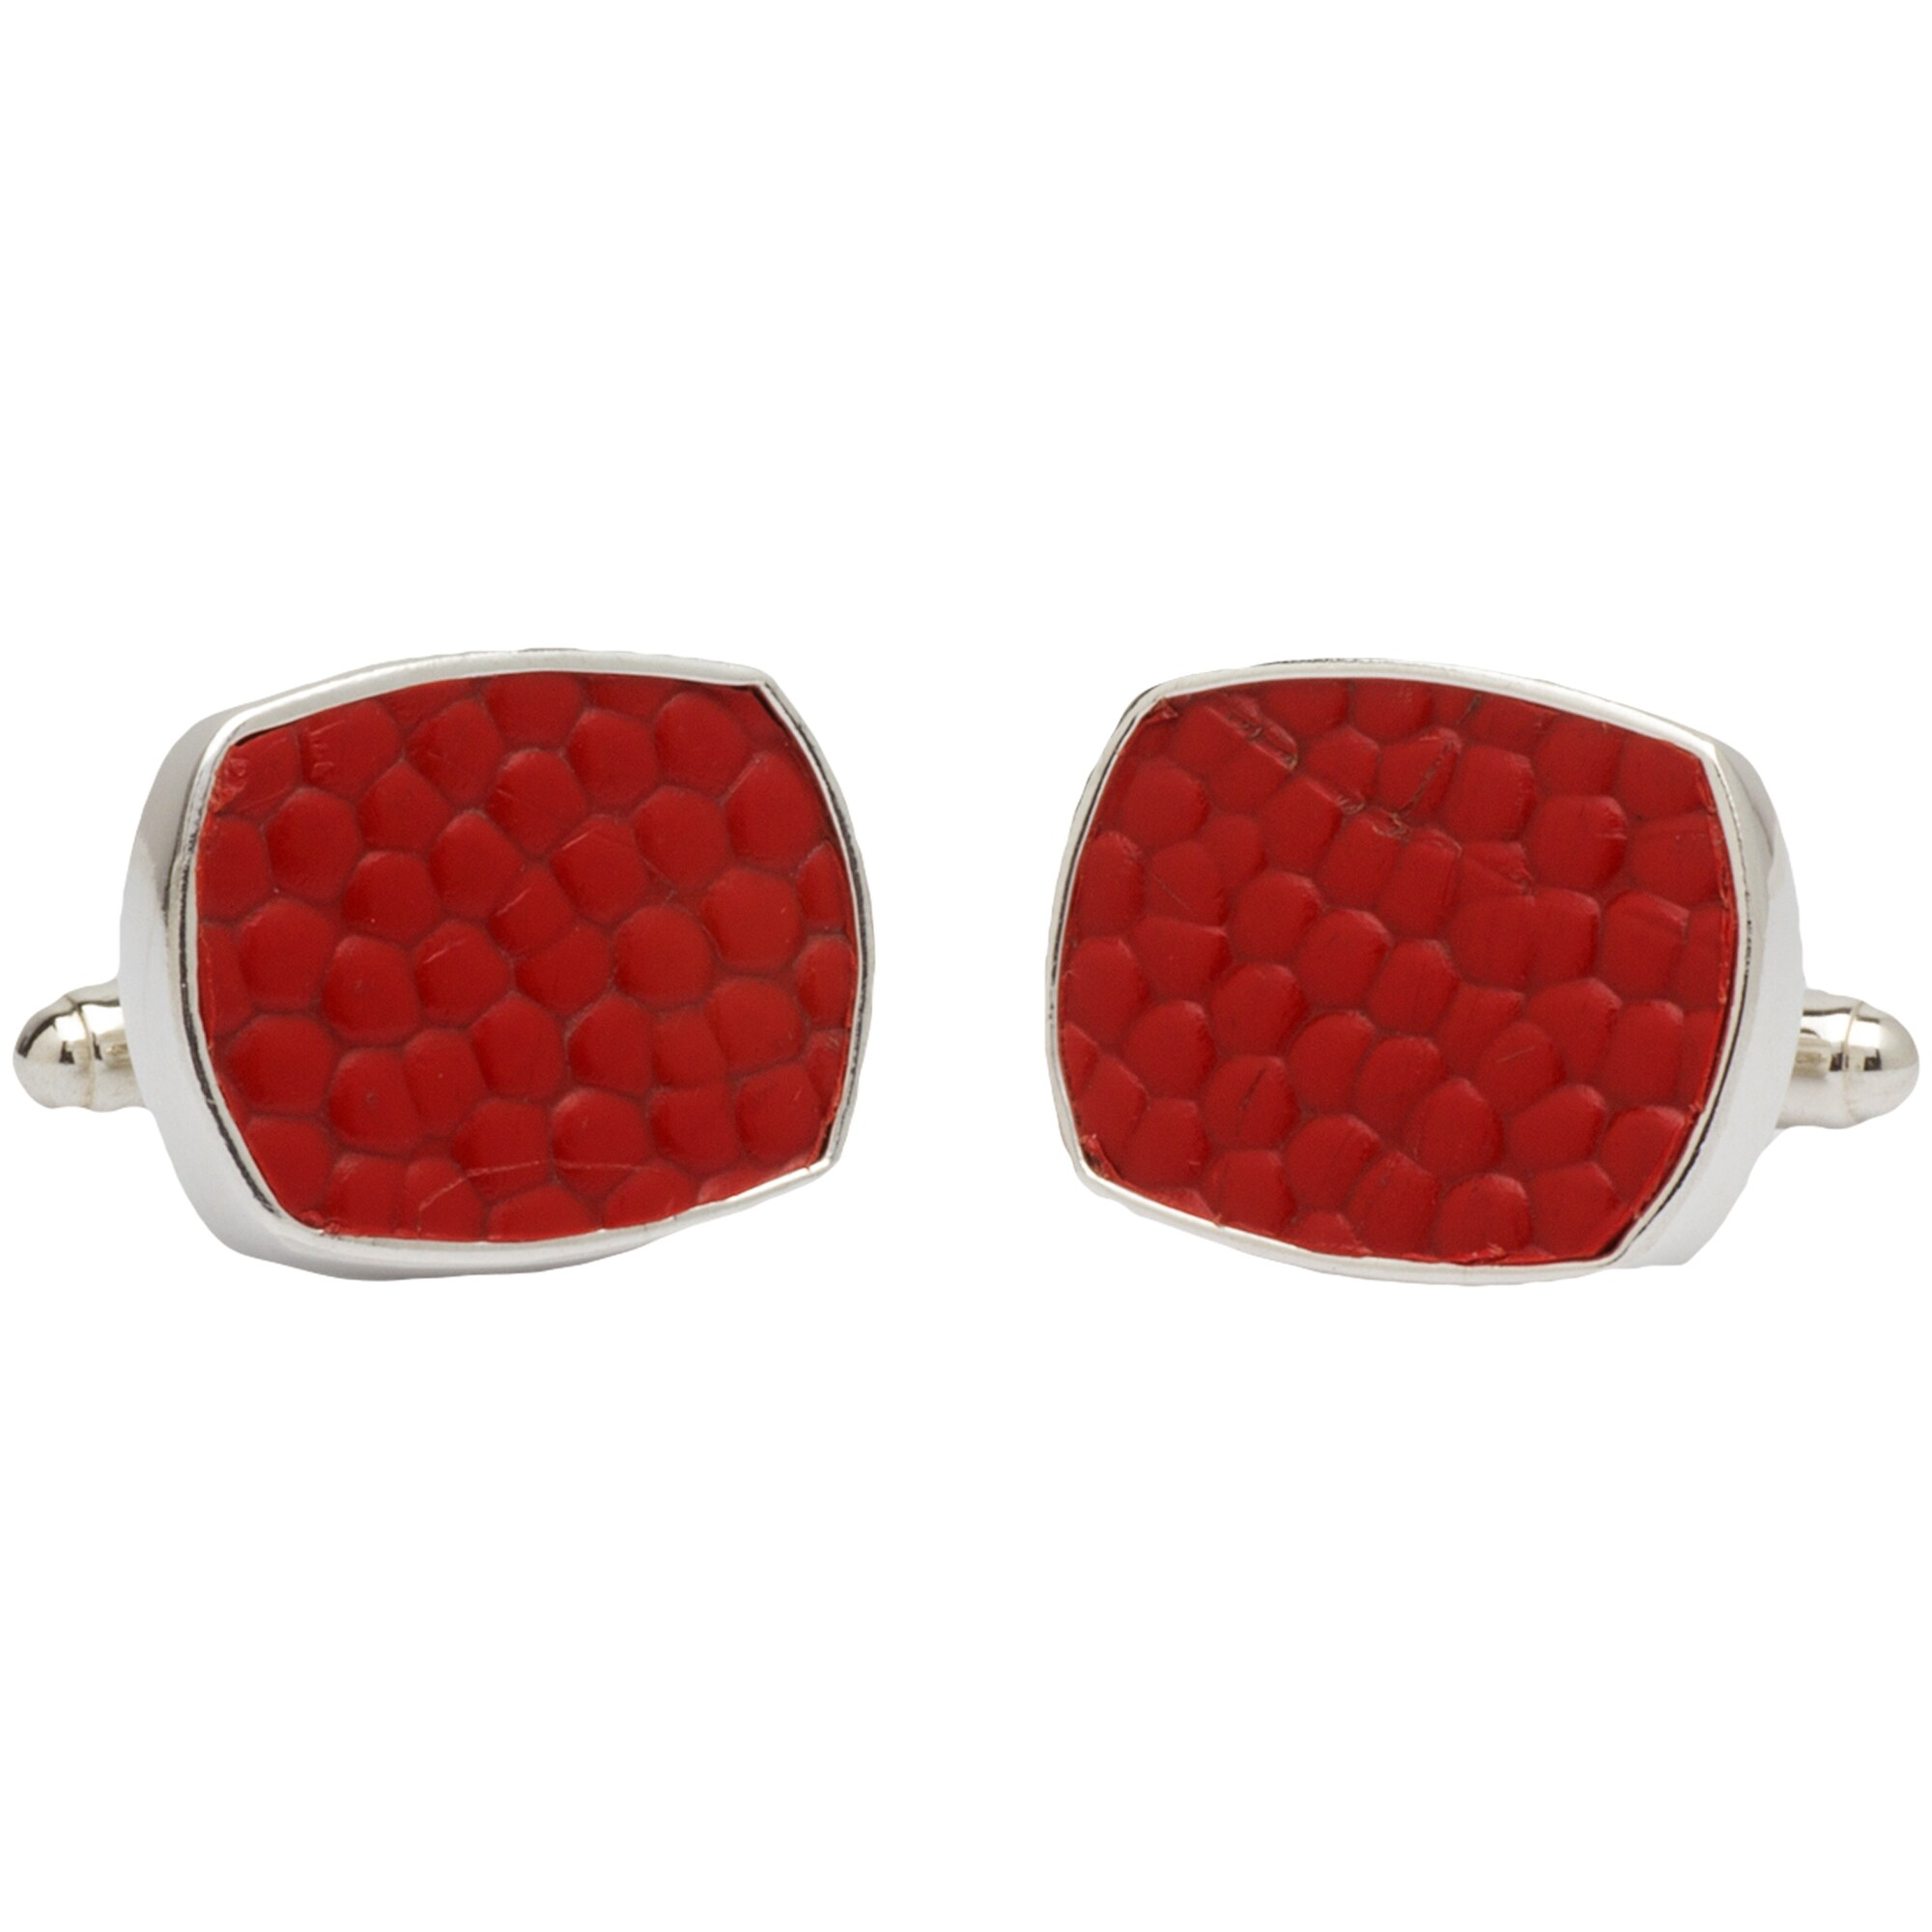 New York Giants Tokens & Icons Game-Used Stadium Seat Cuff Links